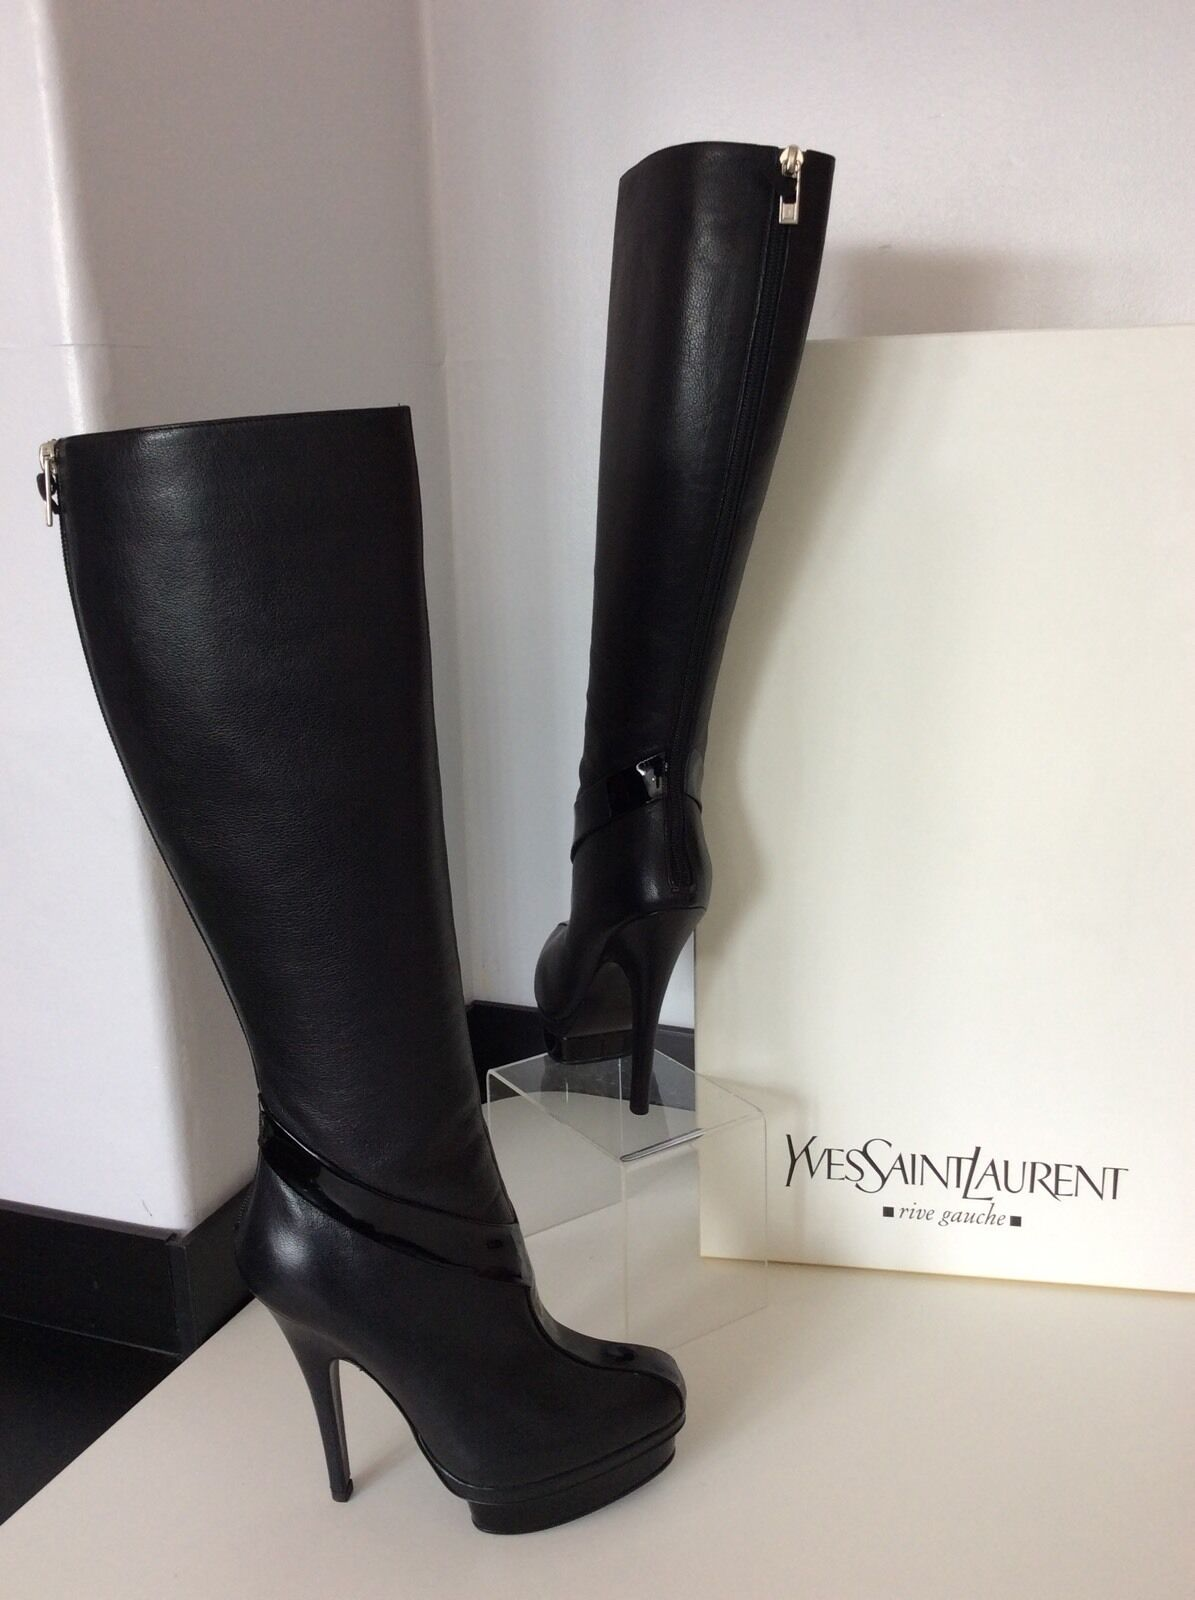 YSL YVES SAINT LAURENT schwarz Leder Patent Knee High Stiefel 38 Uk 5